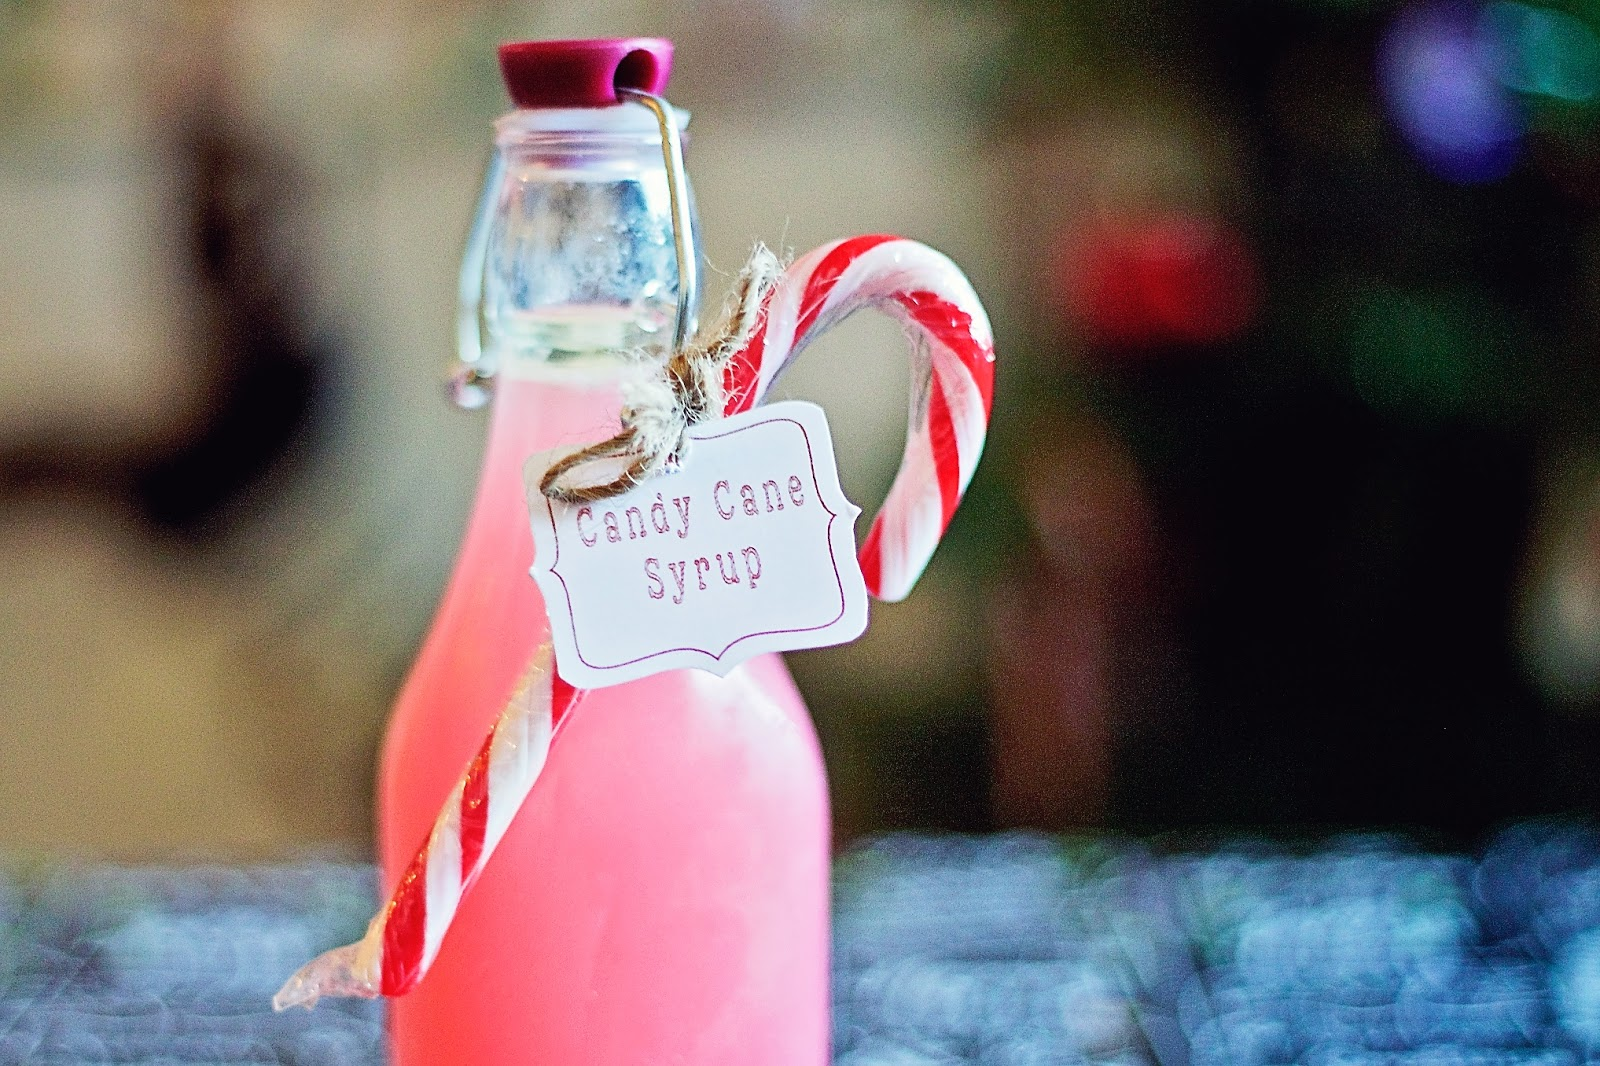 Close up of Candy cane Syrup bottle